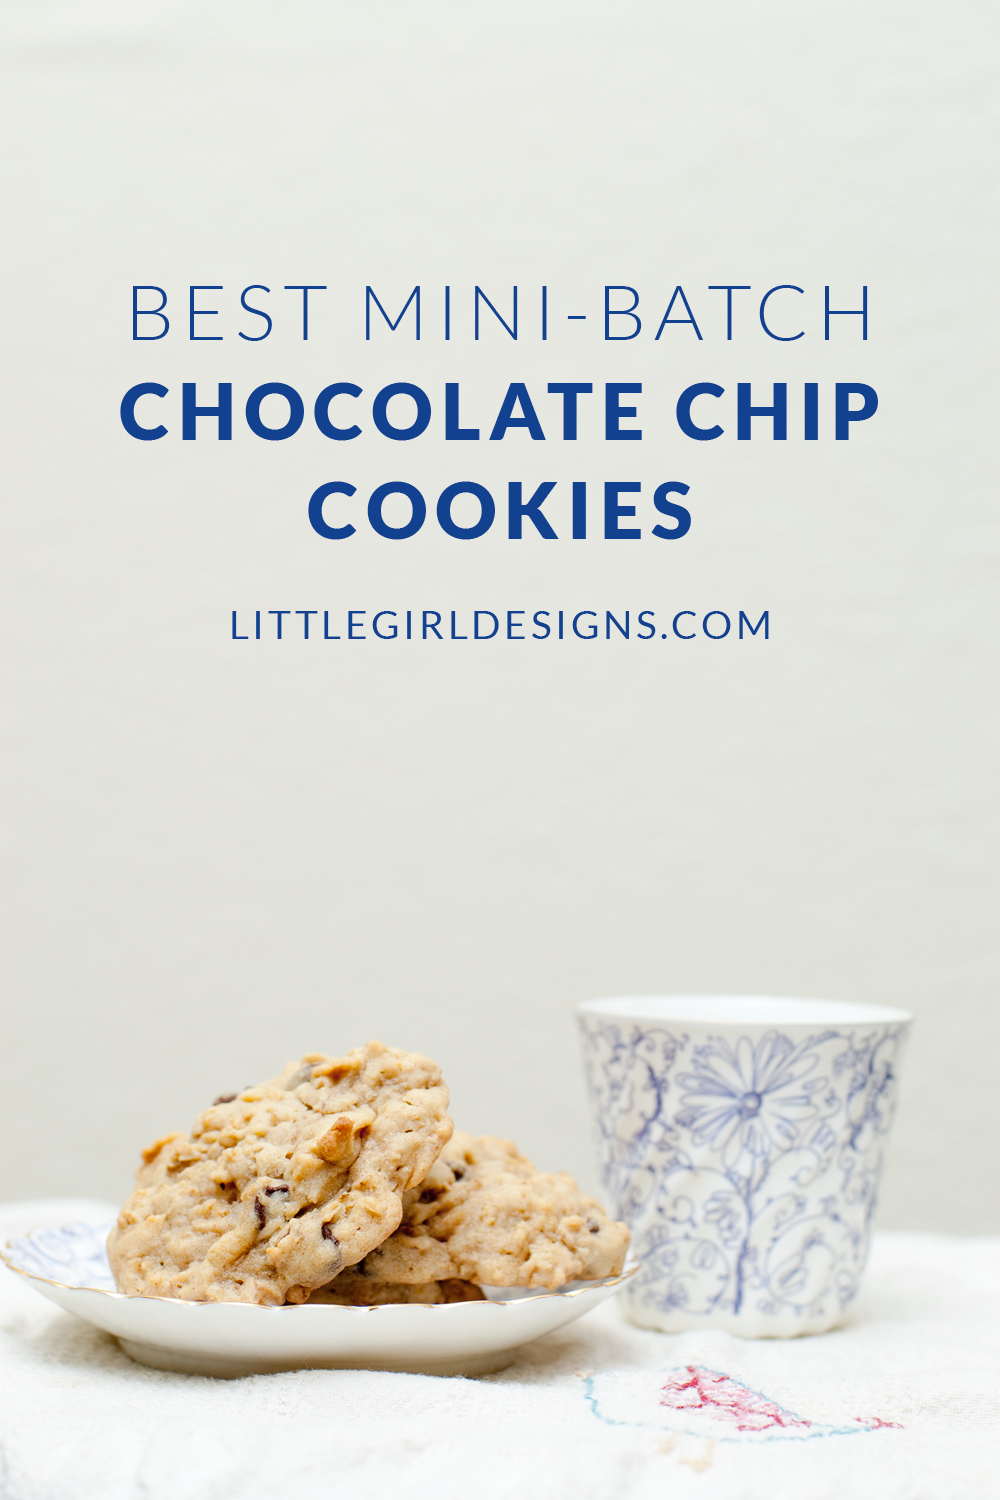 Best Mini-Batch Chocolate Chip Cookies at littlegirldesigns.com